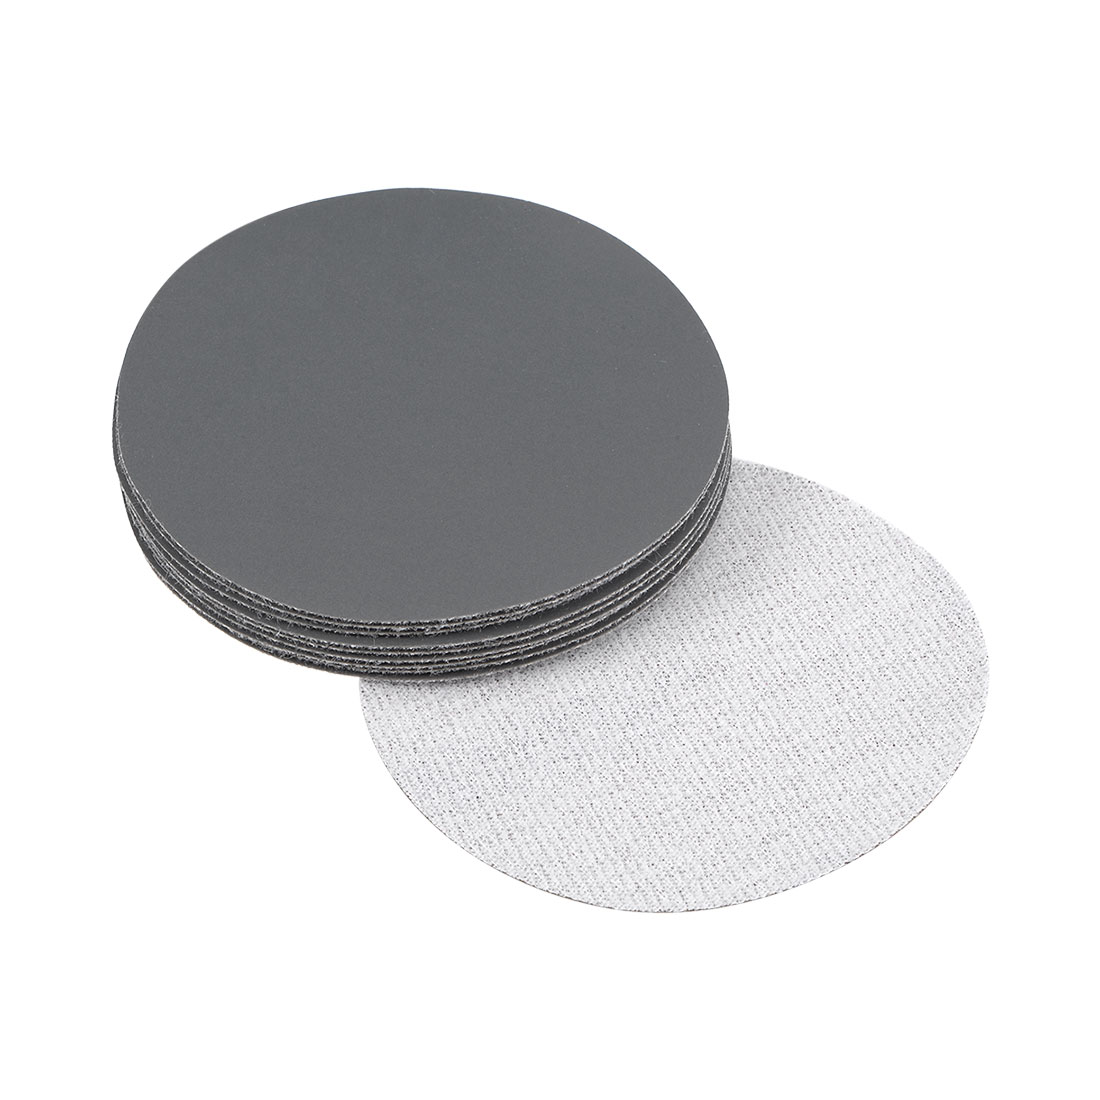 3 inch Wet Dry Discs 2500 Grit Hook and Loop Sanding Disc Silicon Carbide 10pcs